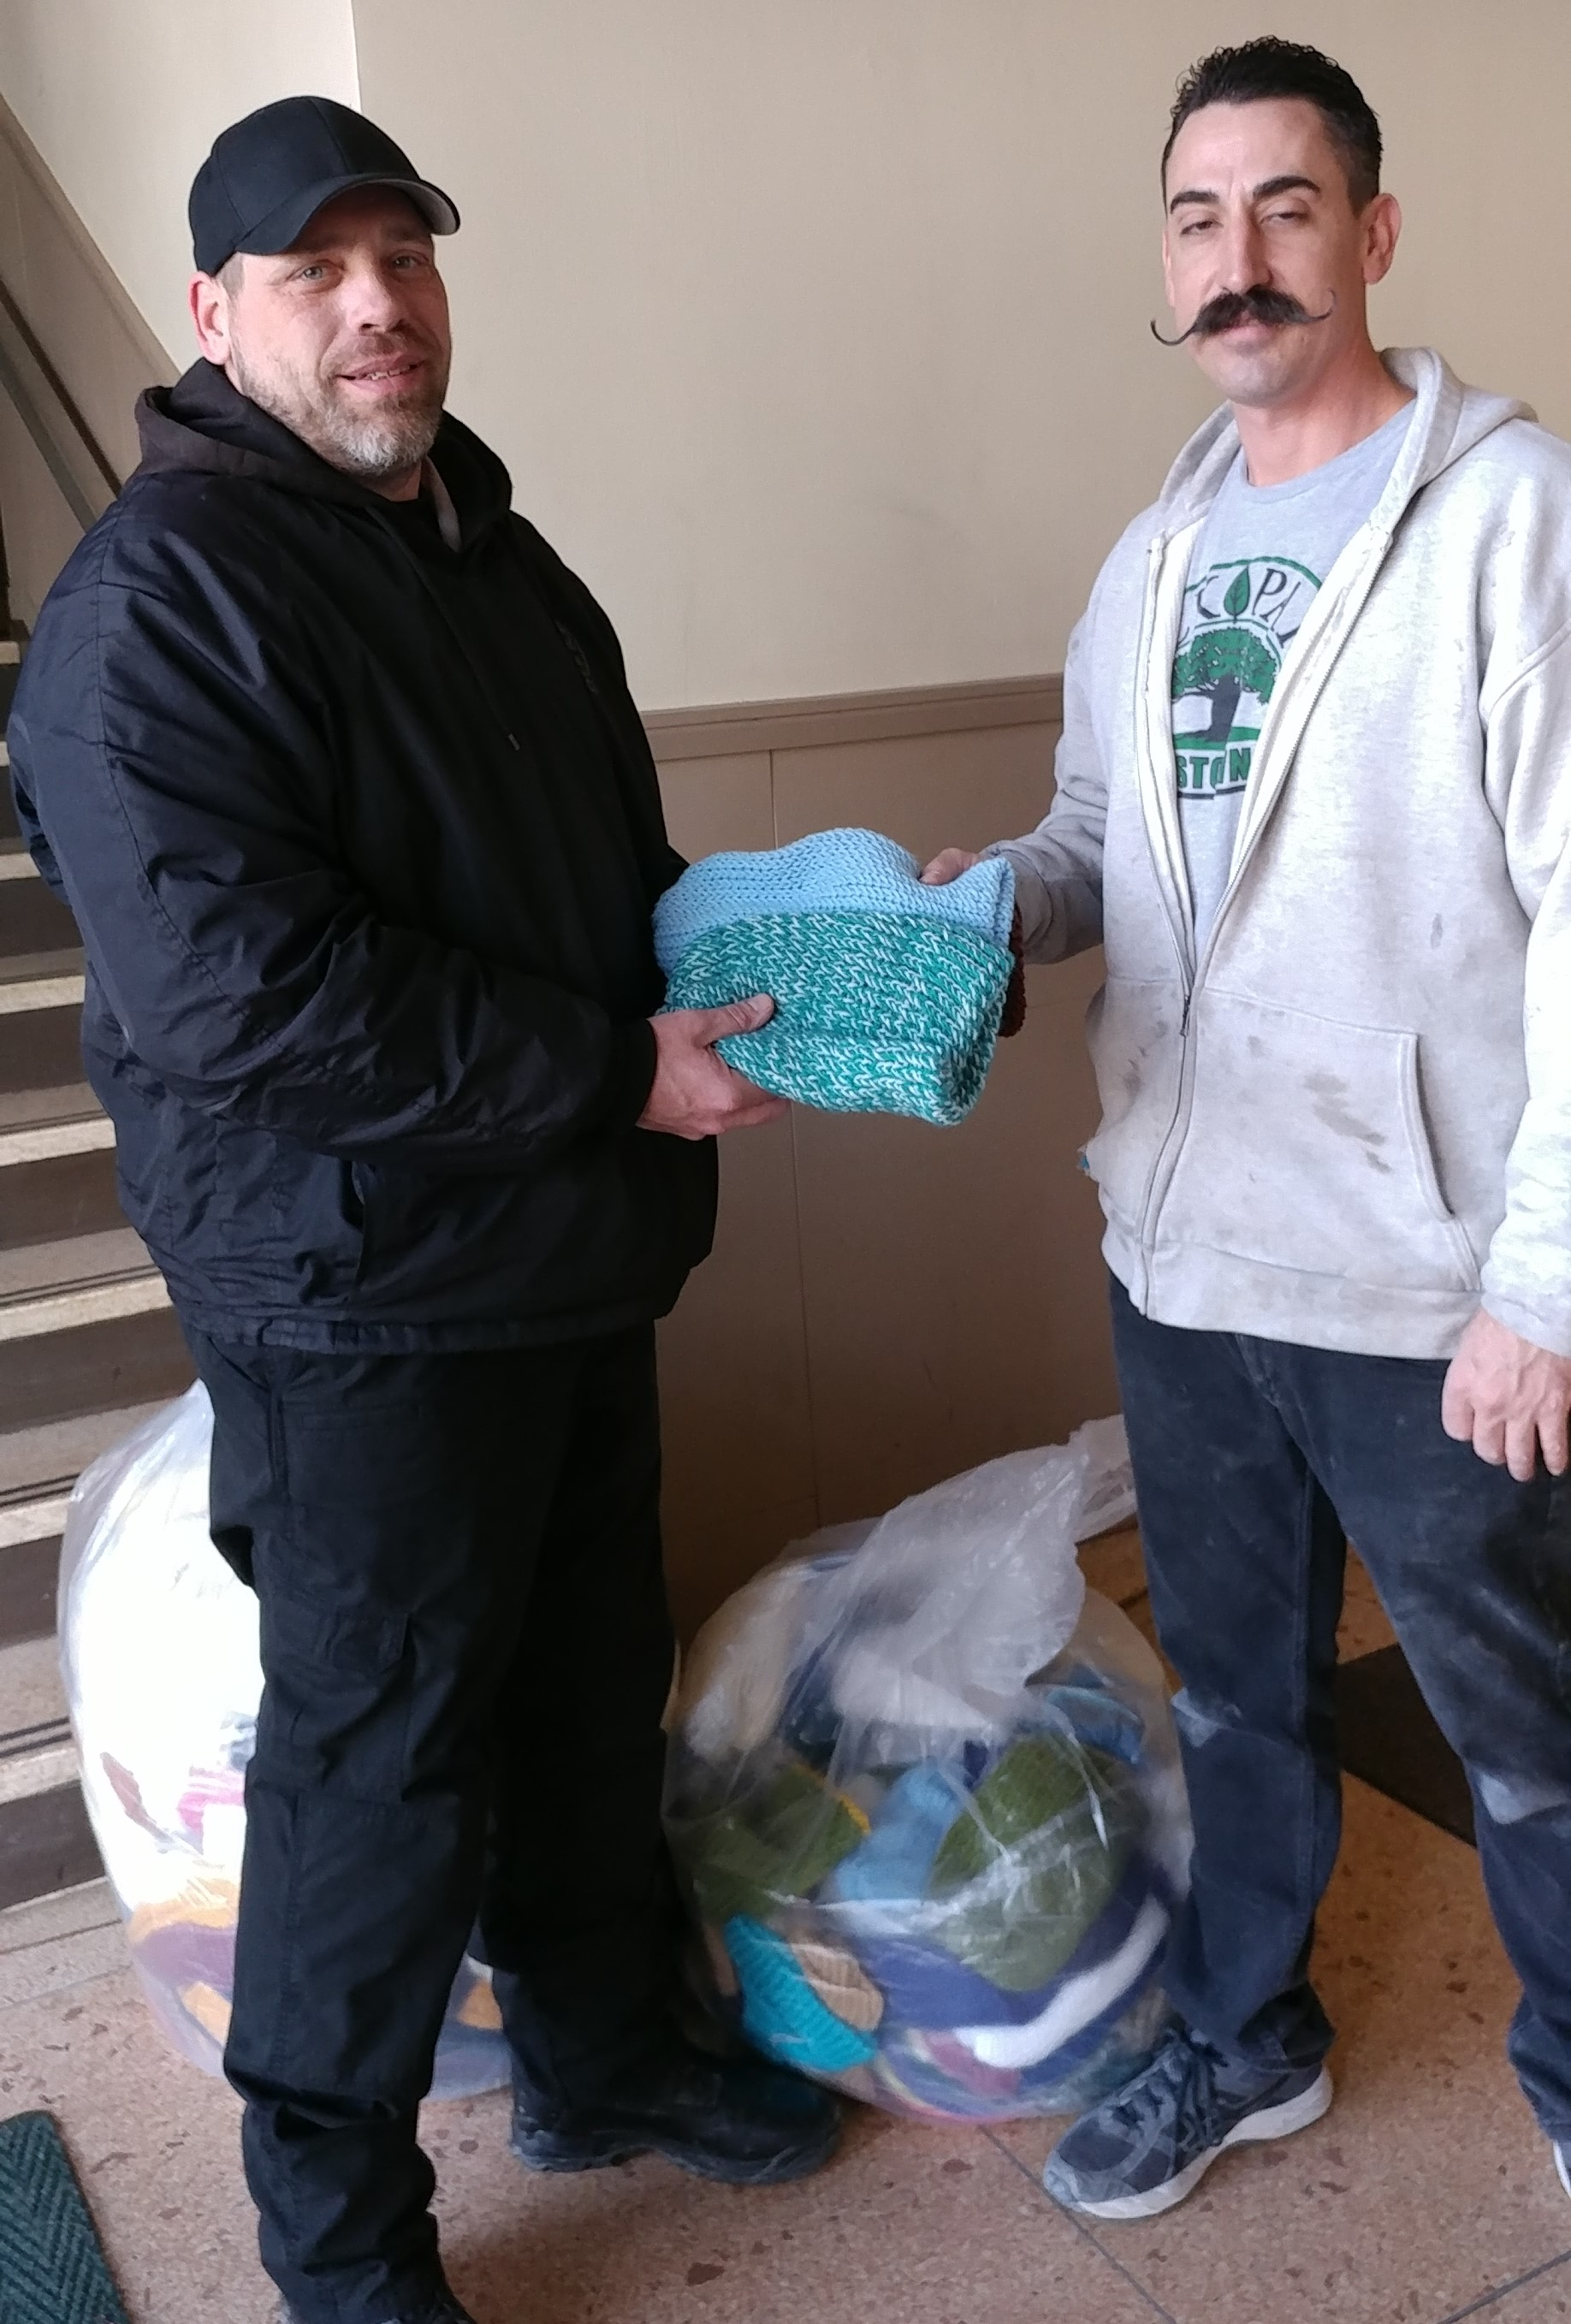 TCI Offenders Donate Hats to the Homeless